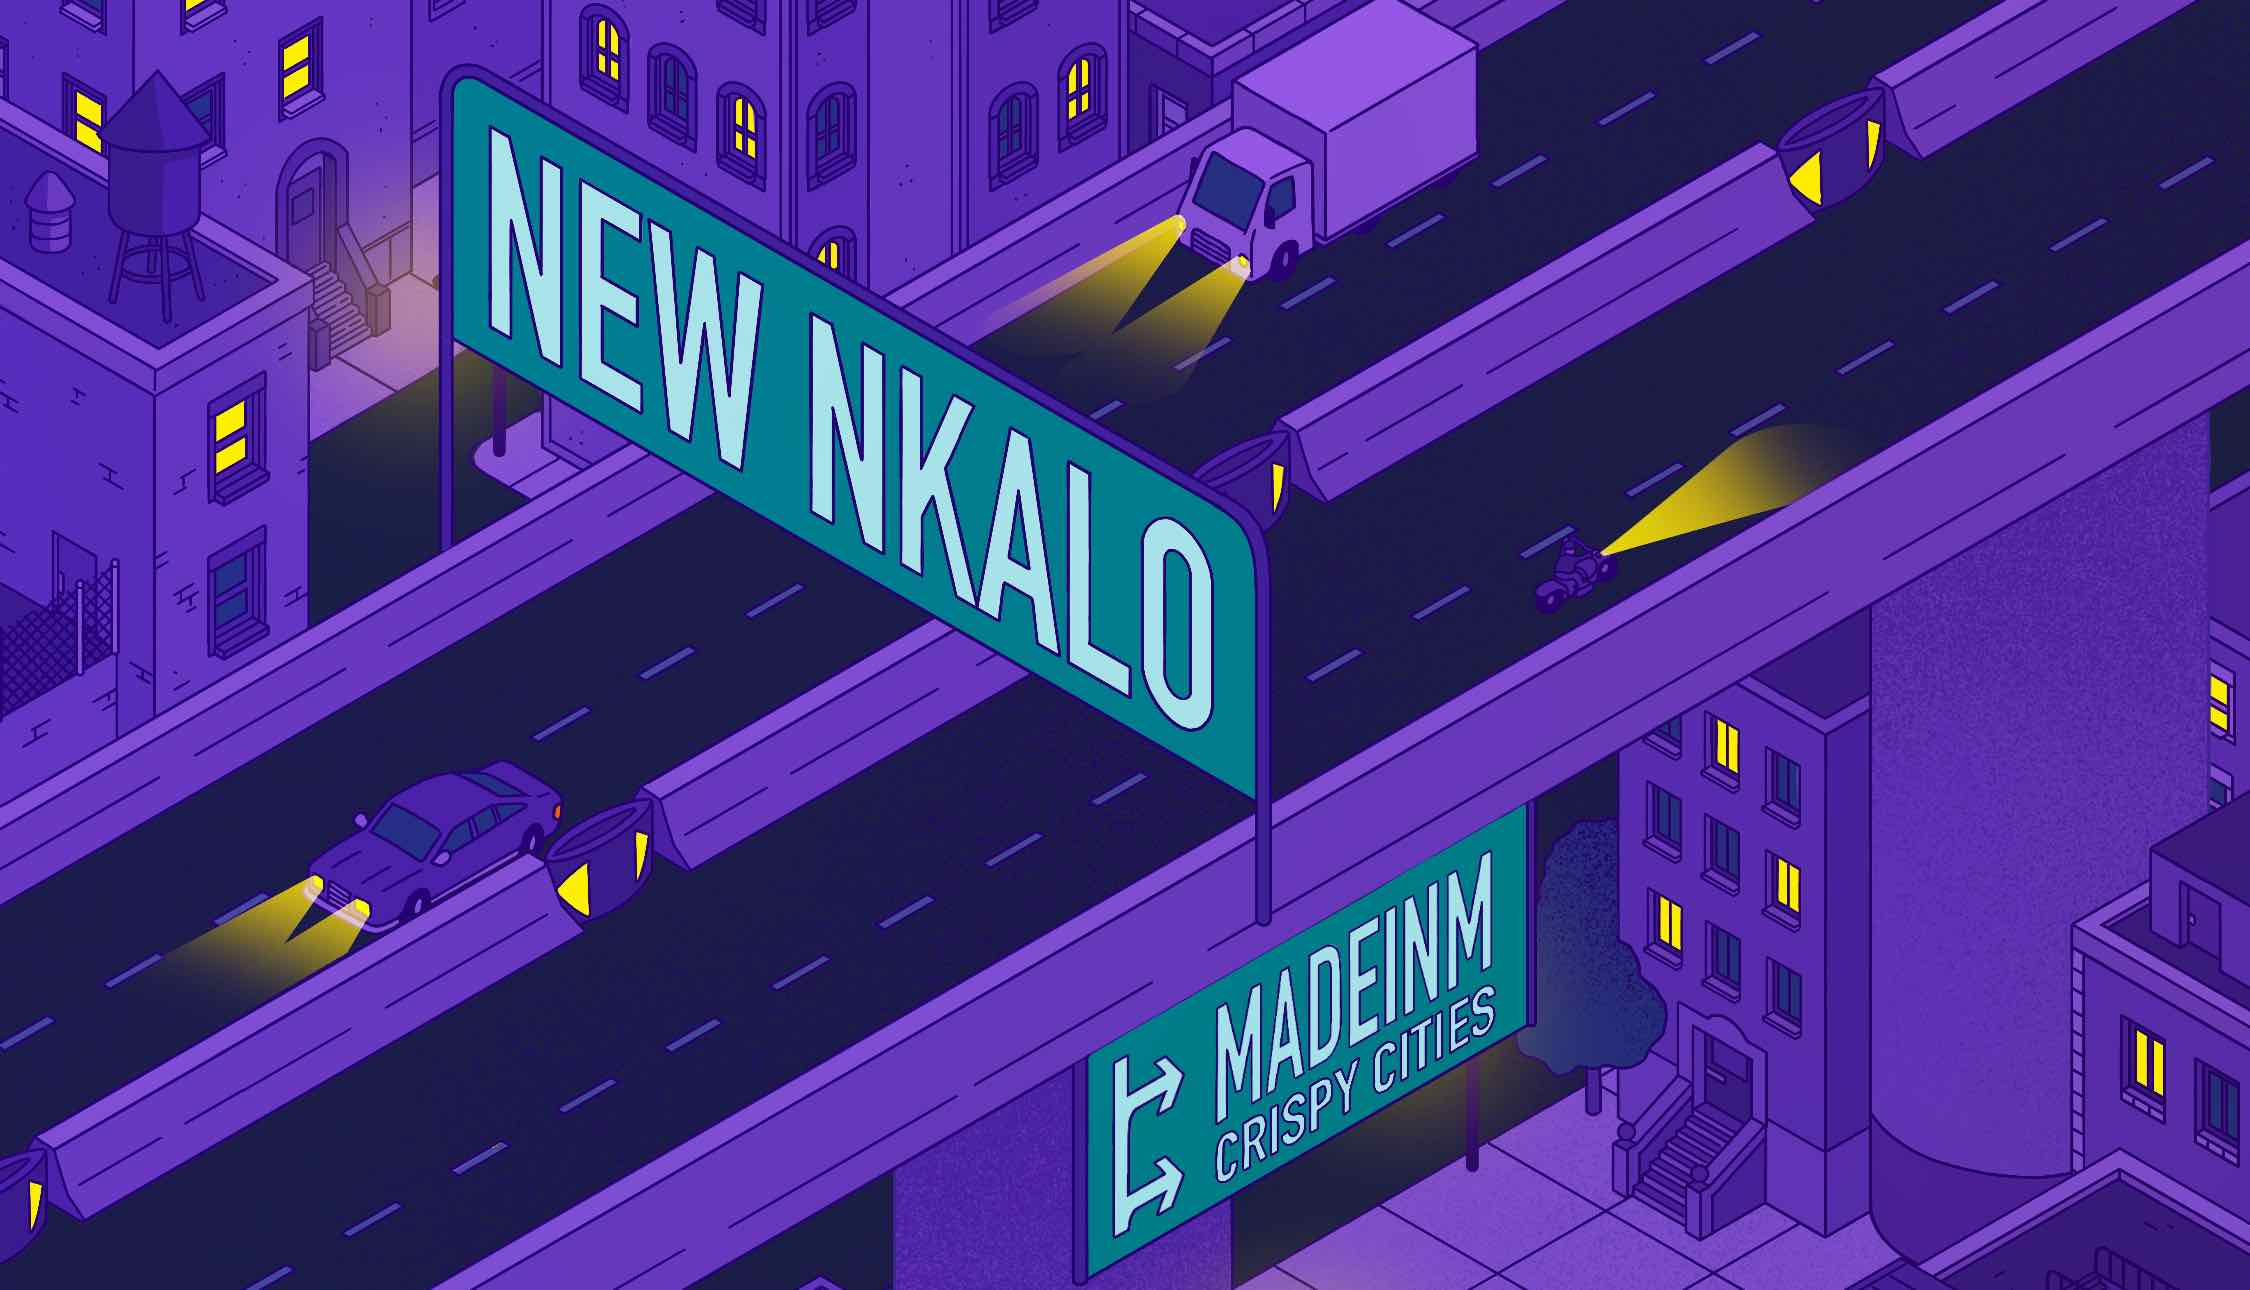 Made in M – New Nkalo